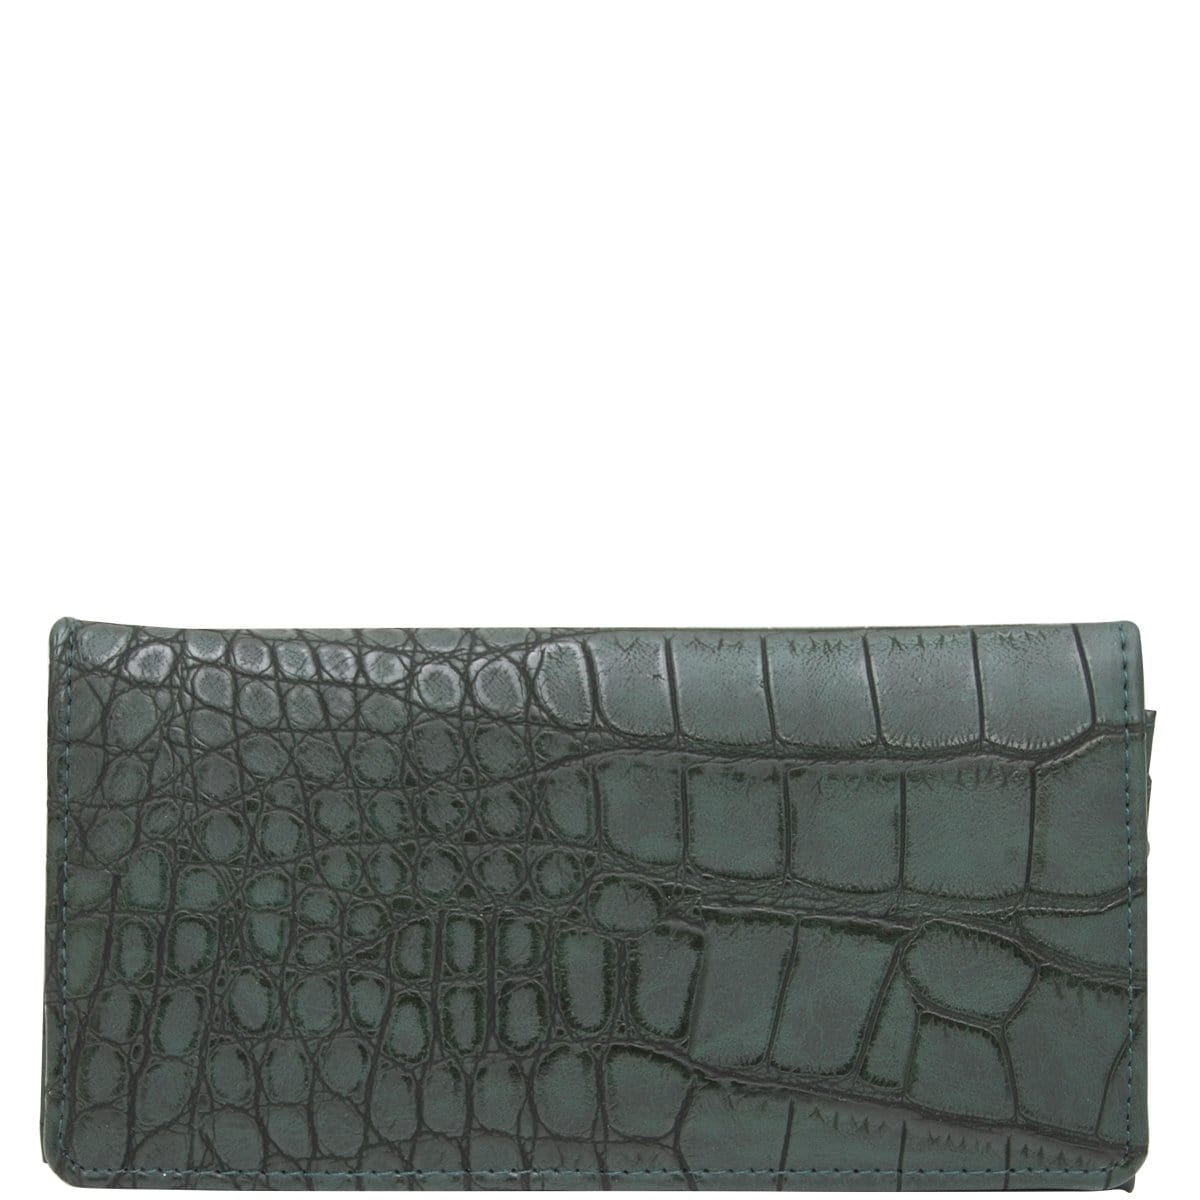 Wider Window Wallet - Dark Green Croc